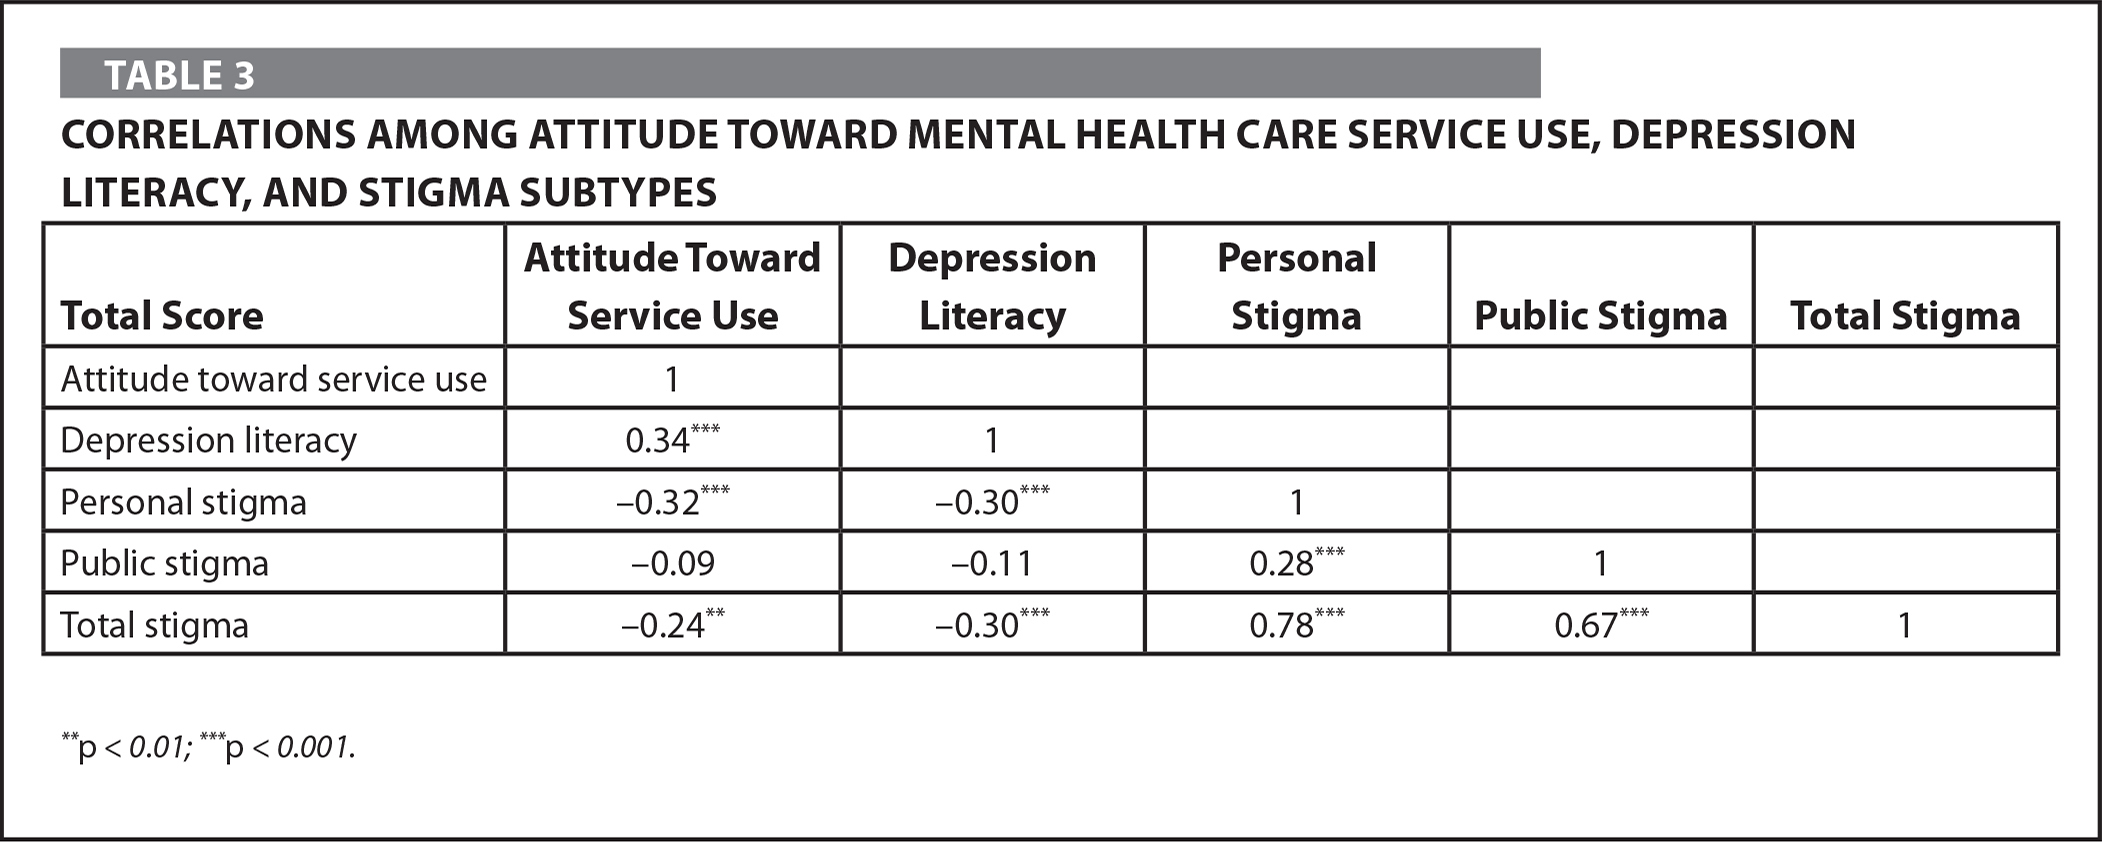 Correlations Among Attitude Toward Mental Health Care Service Use, Depression Literacy, and Stigma Subtypes